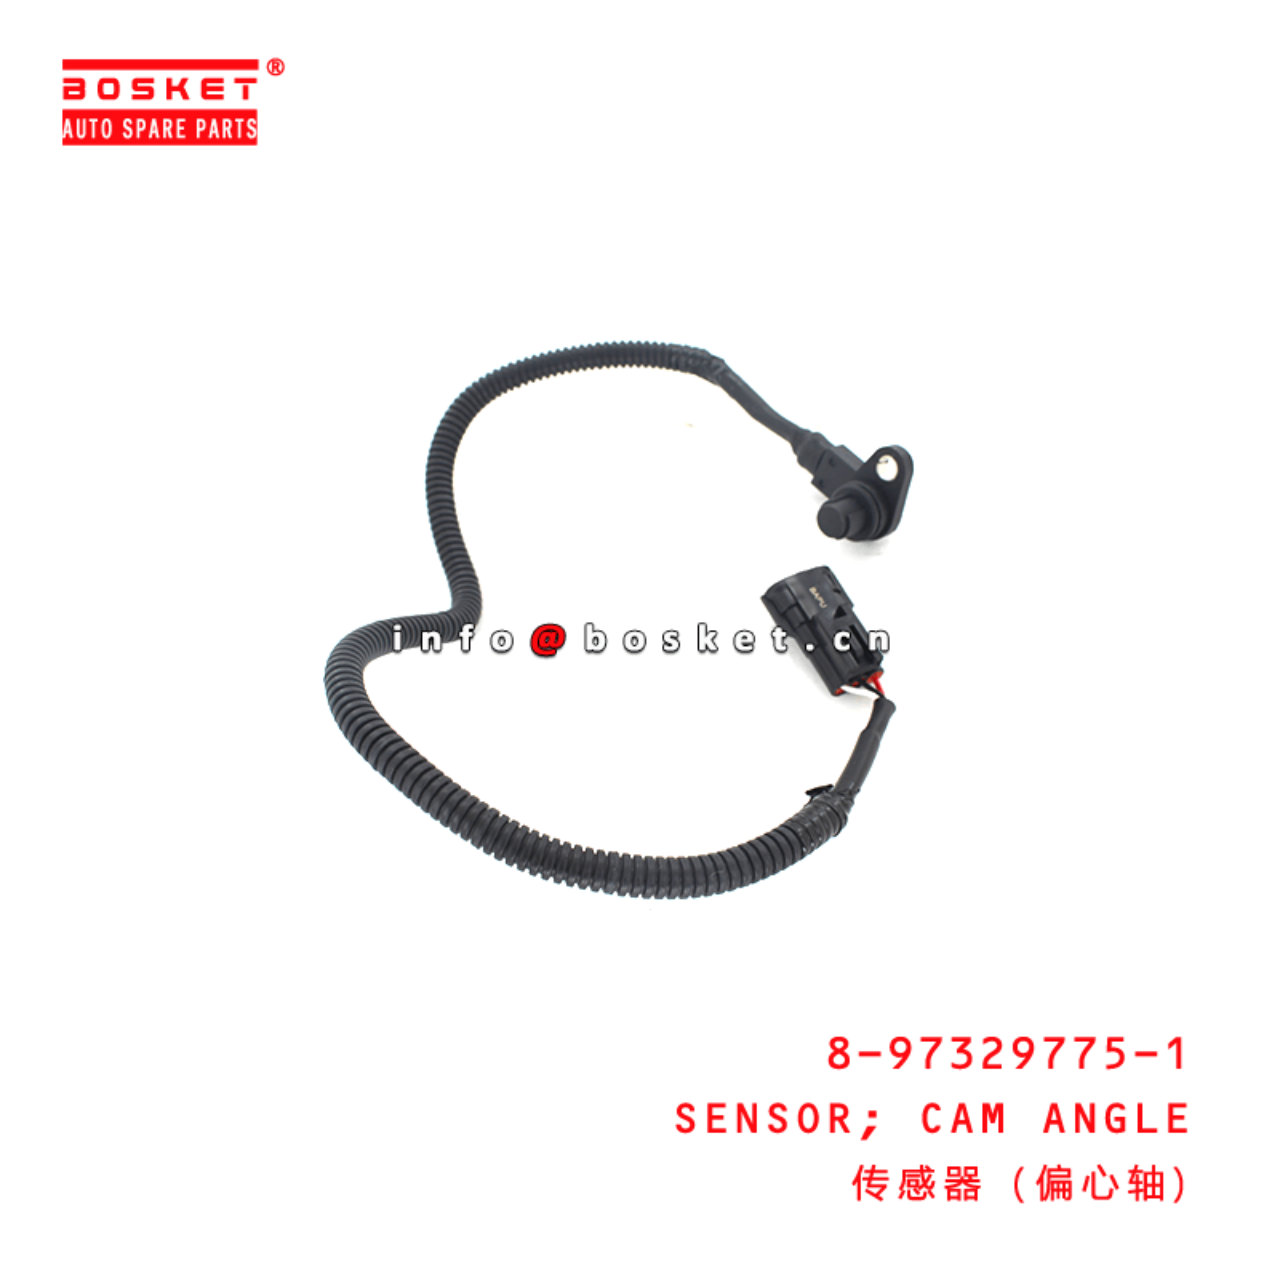 8-97329775-1 Cam Angle Sensor 8973297751 Suitable ...